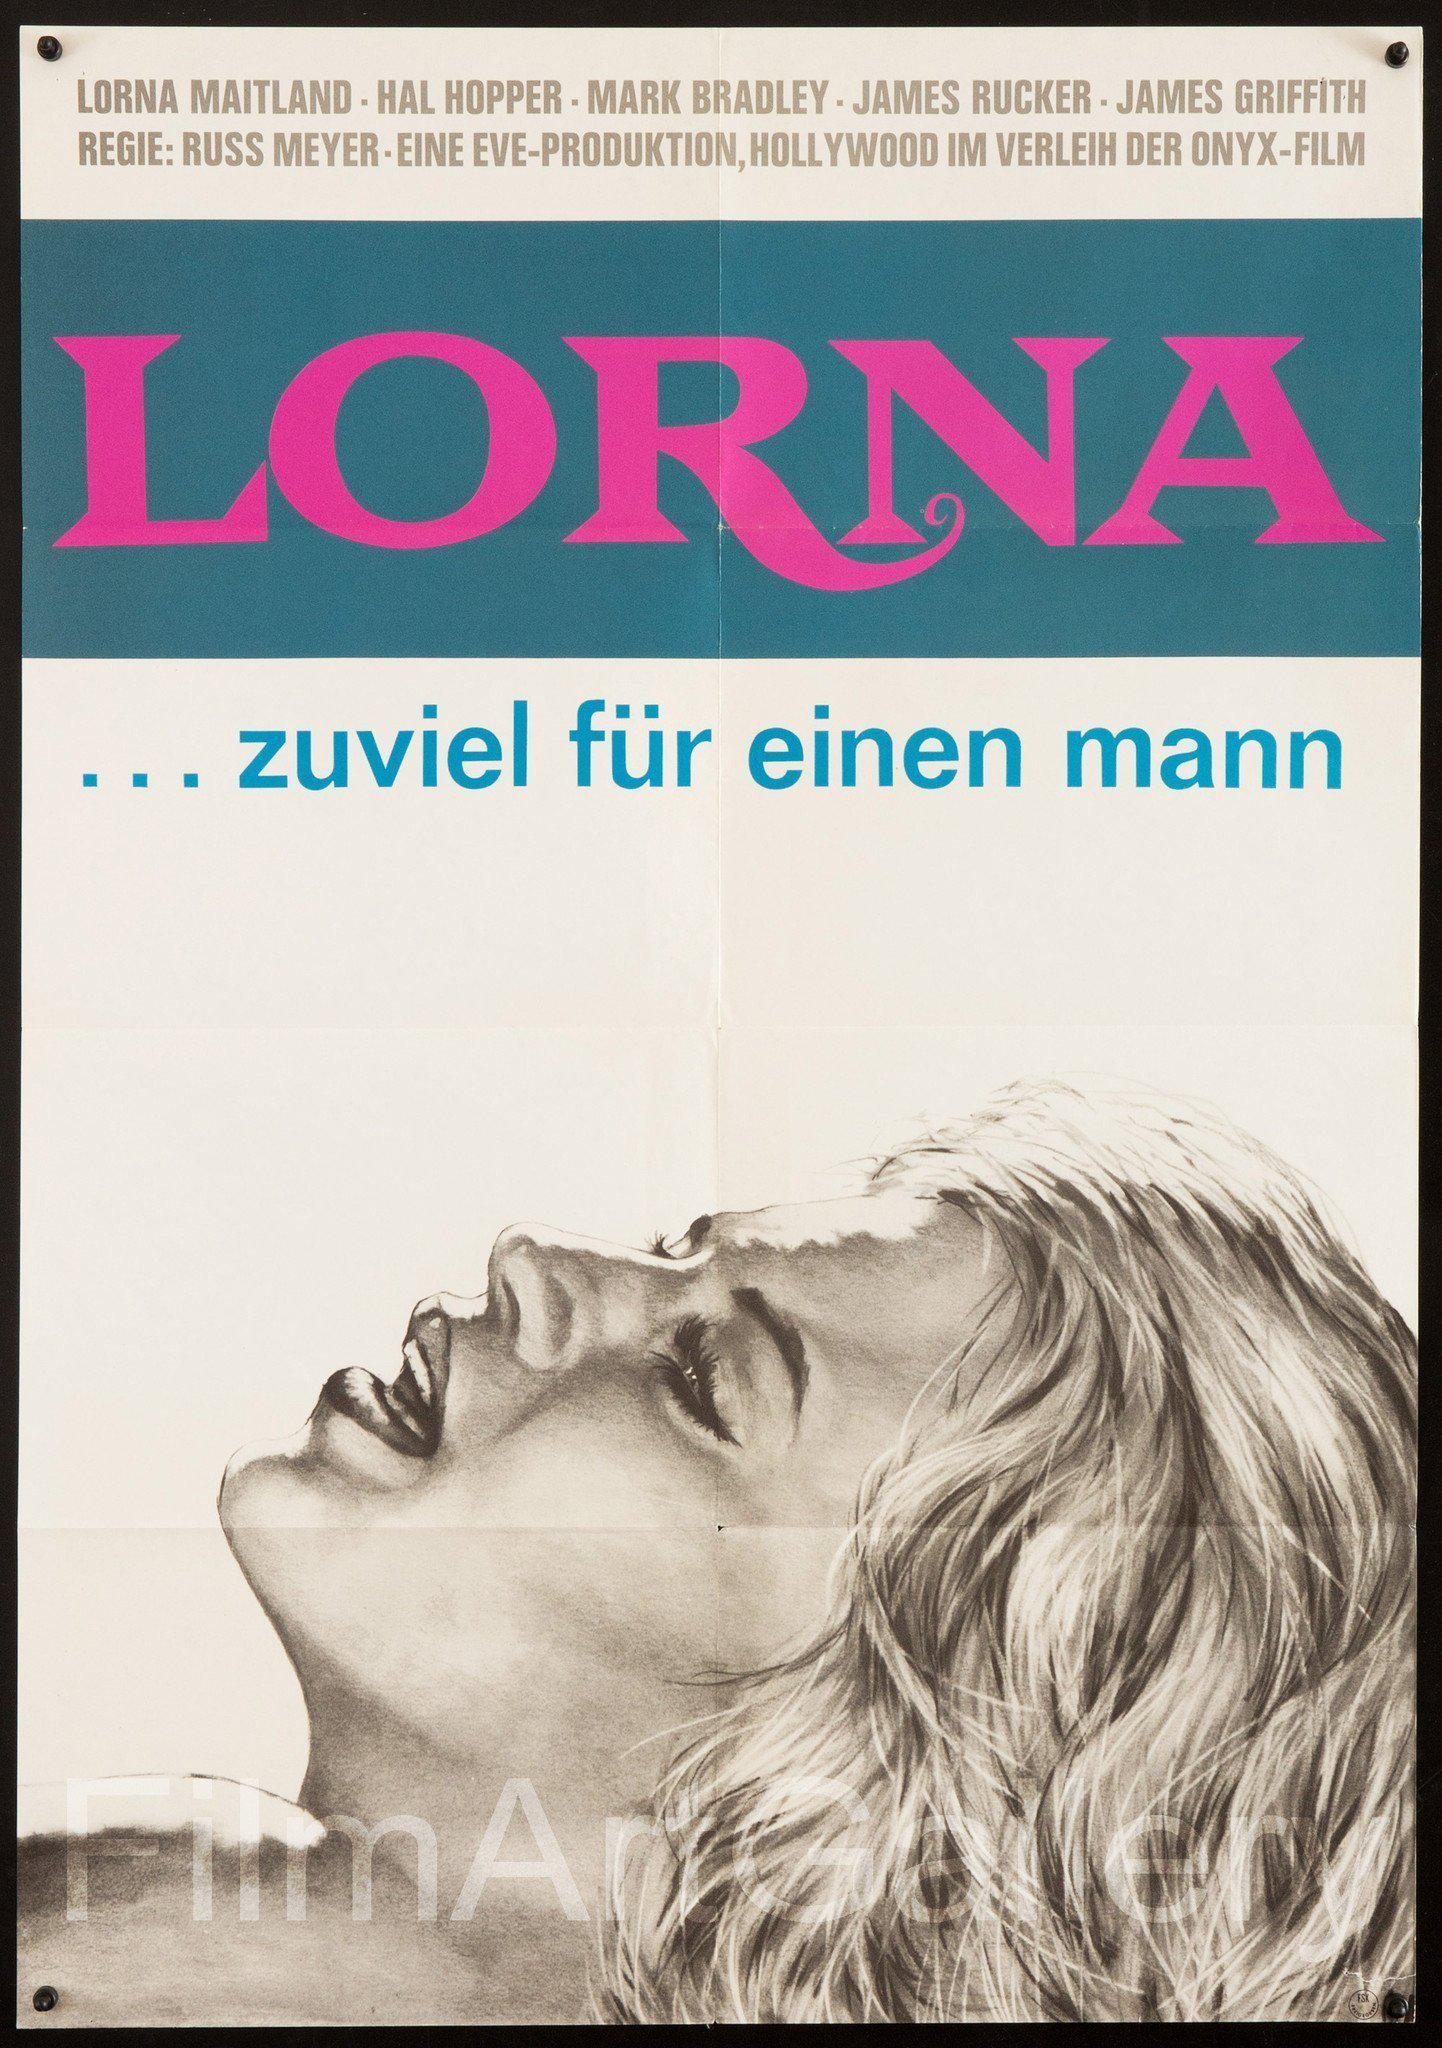 Lorna German A1 (23x33) Original Vintage Movie Poster